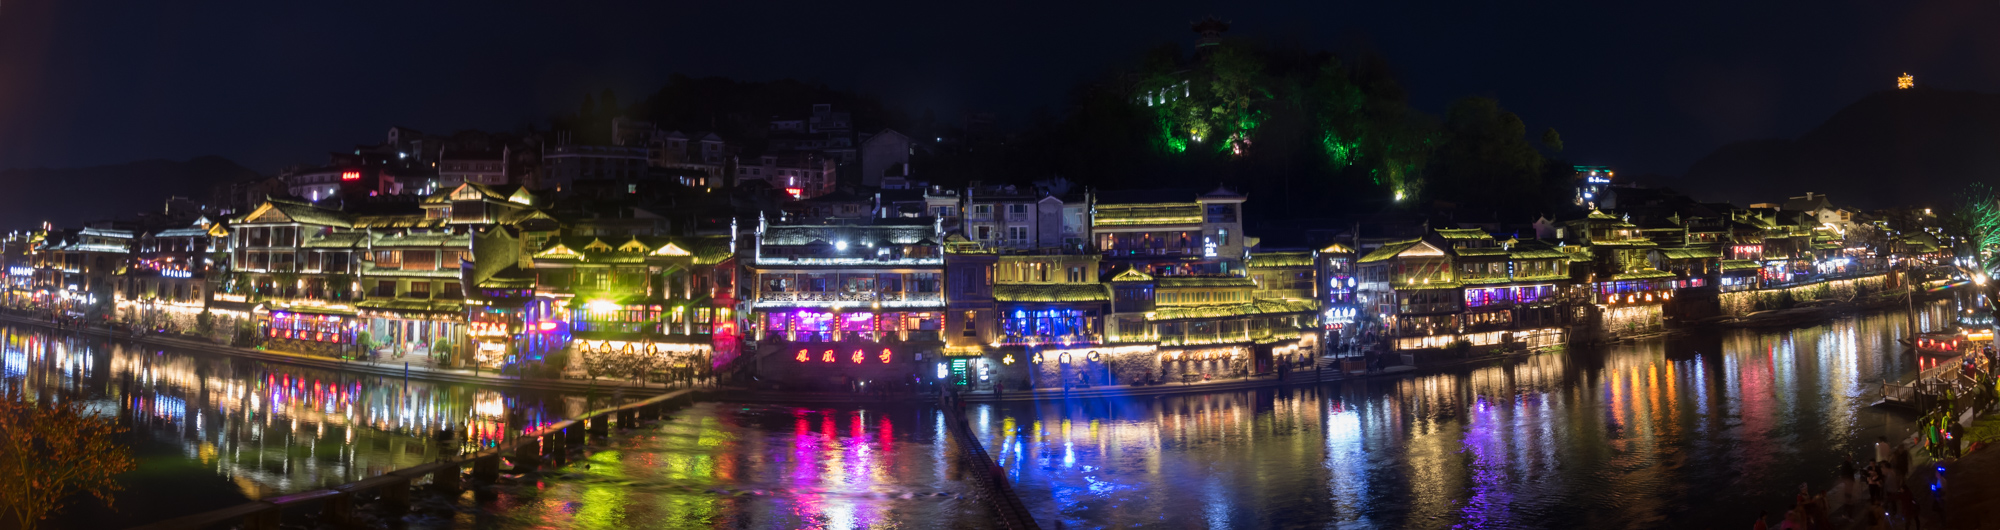 Panorama view across the river at night